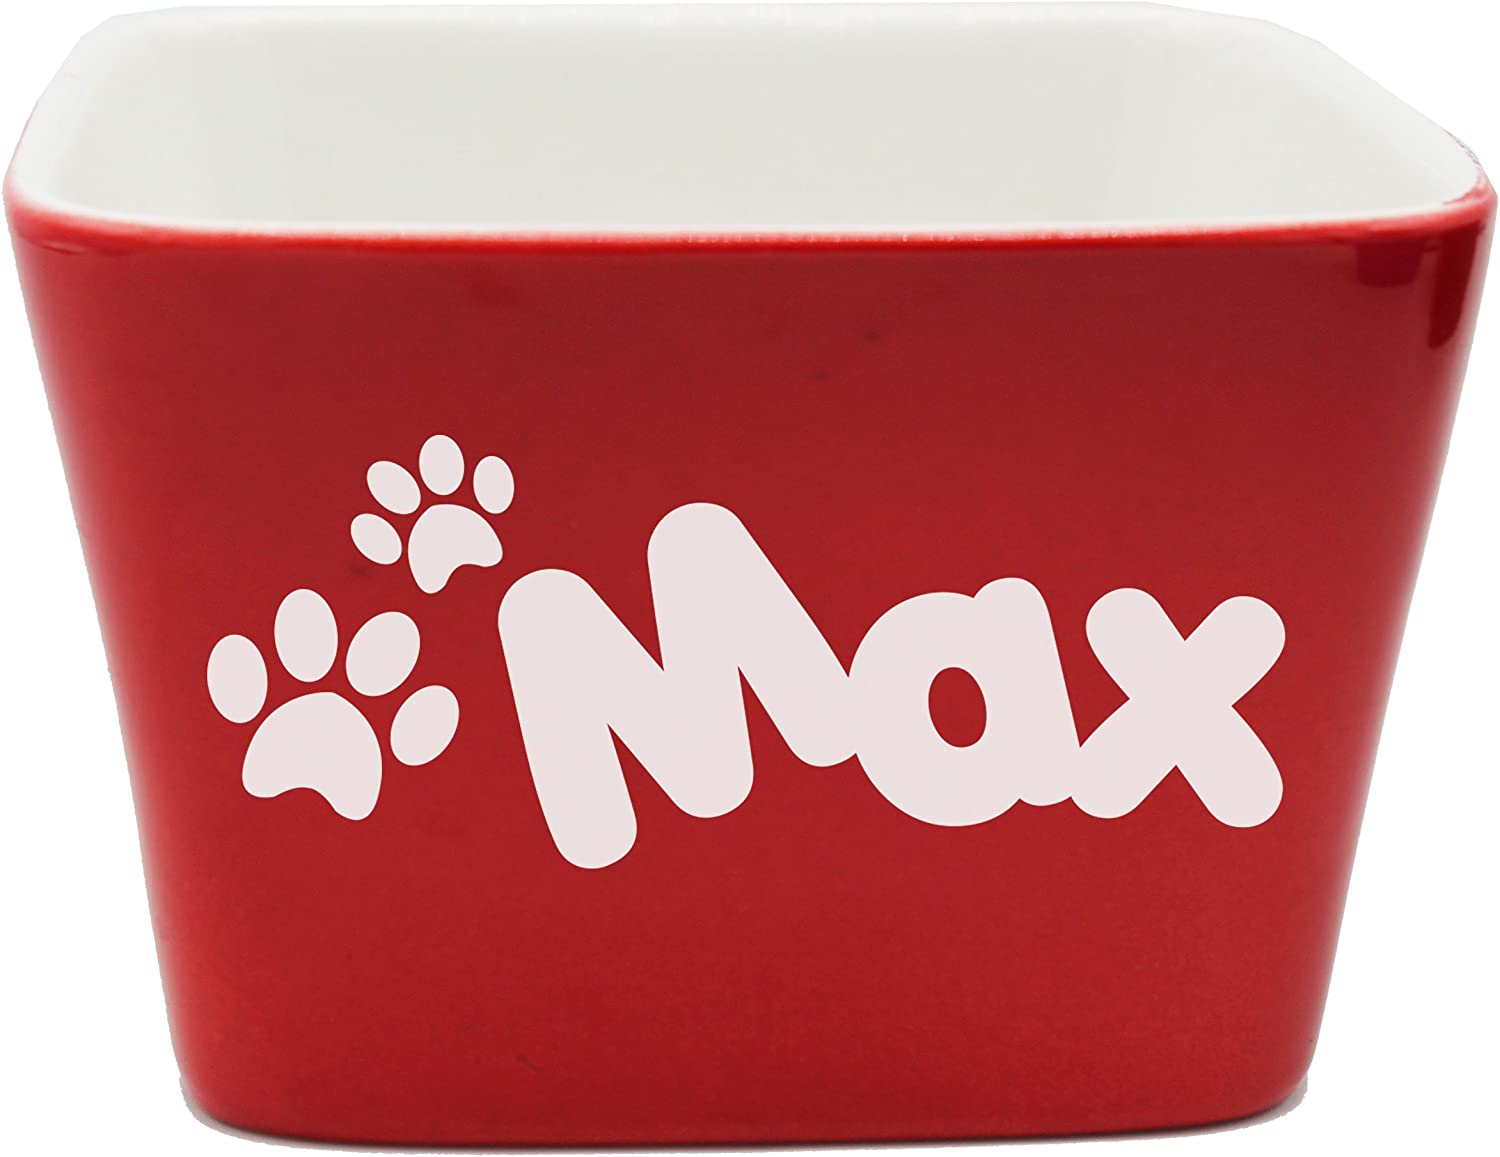 Custom Personalized Pet Bowl Gift - Engraved Dog and Cat Bowls - Monogrammed Ceramic Dish (Small - 4